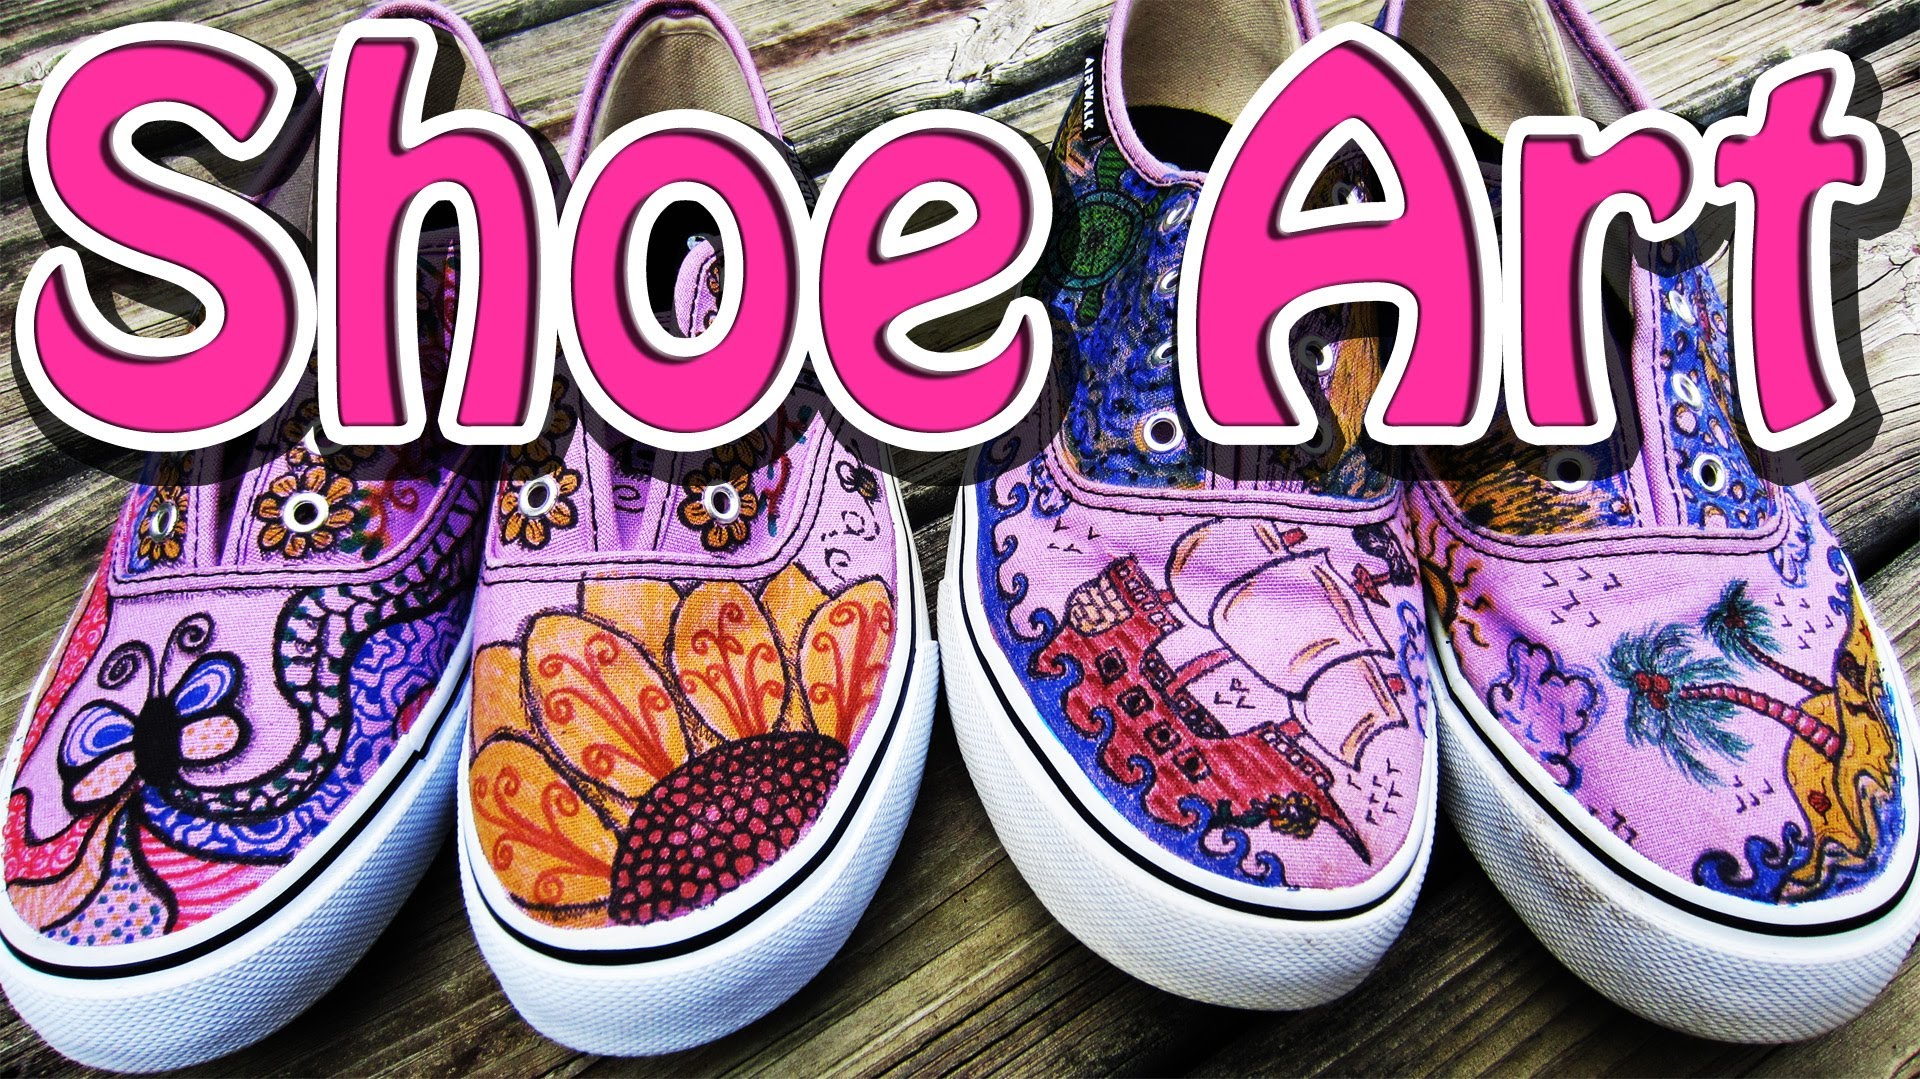 Drawn shoe diy Designs EasyMeWorld? Art For Shoes